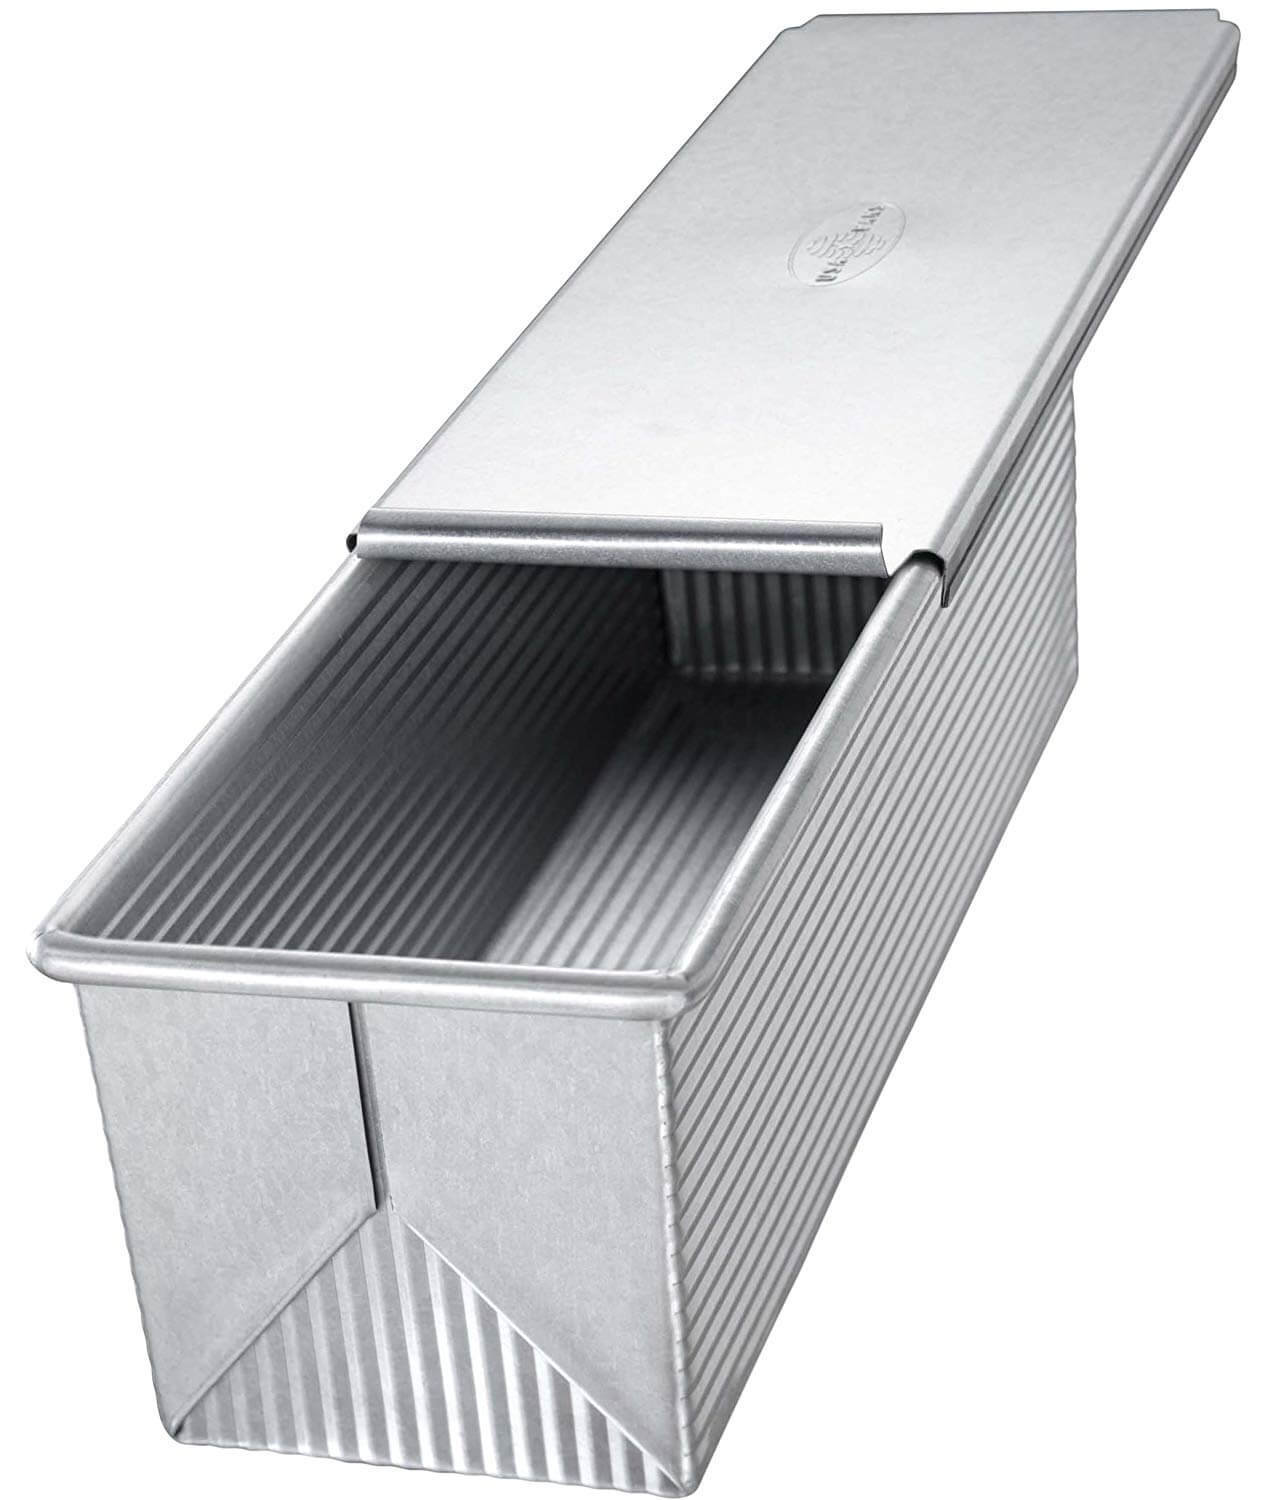 The 10 Best Bread Loaf Pans in 2019 | Food Shark Marfa